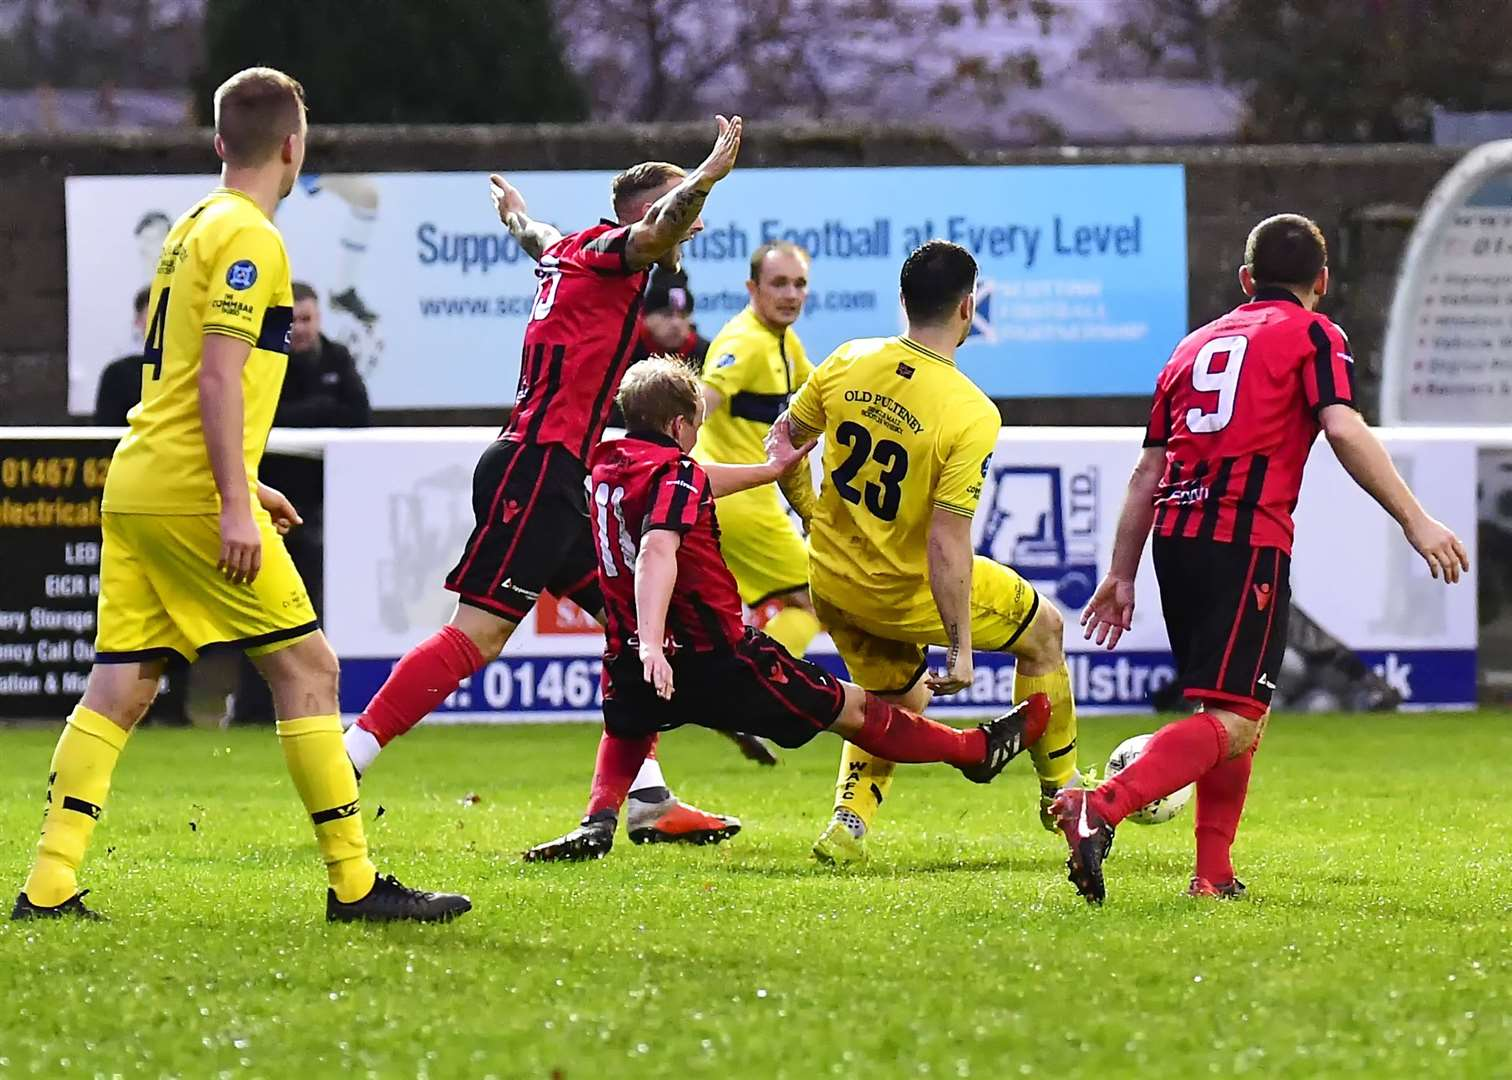 Inverurie's Jamie Michie goes 'loco' as he hacks down Wick's Sam Mackay from behind. Michie saw not one but two red cards after this incident. Picture: Mel Roger